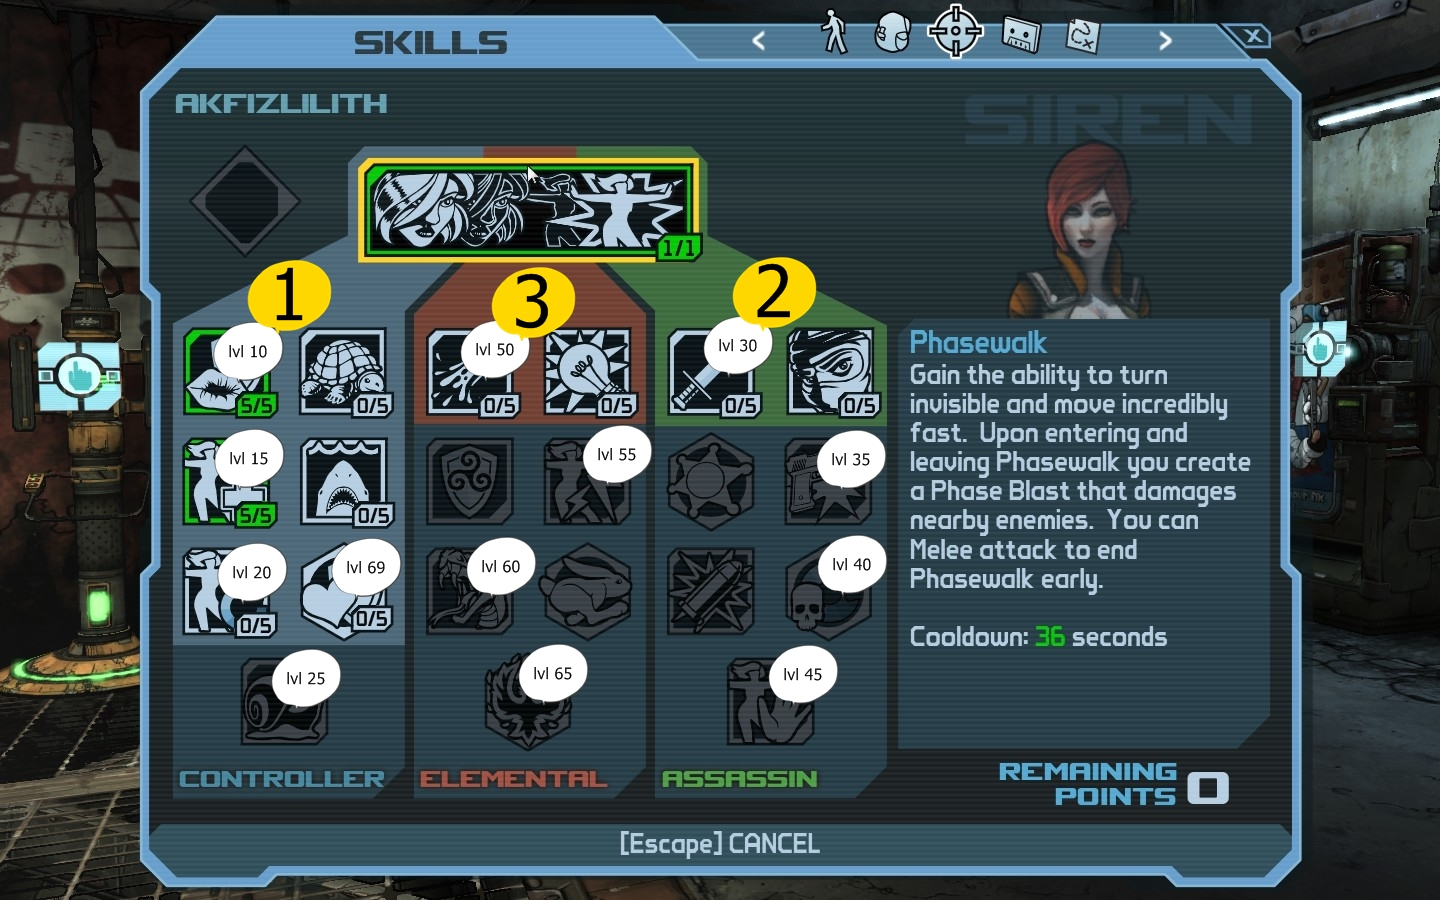 Steam Community Guide Borderlands Skill Tree Plan For all 4 Classes